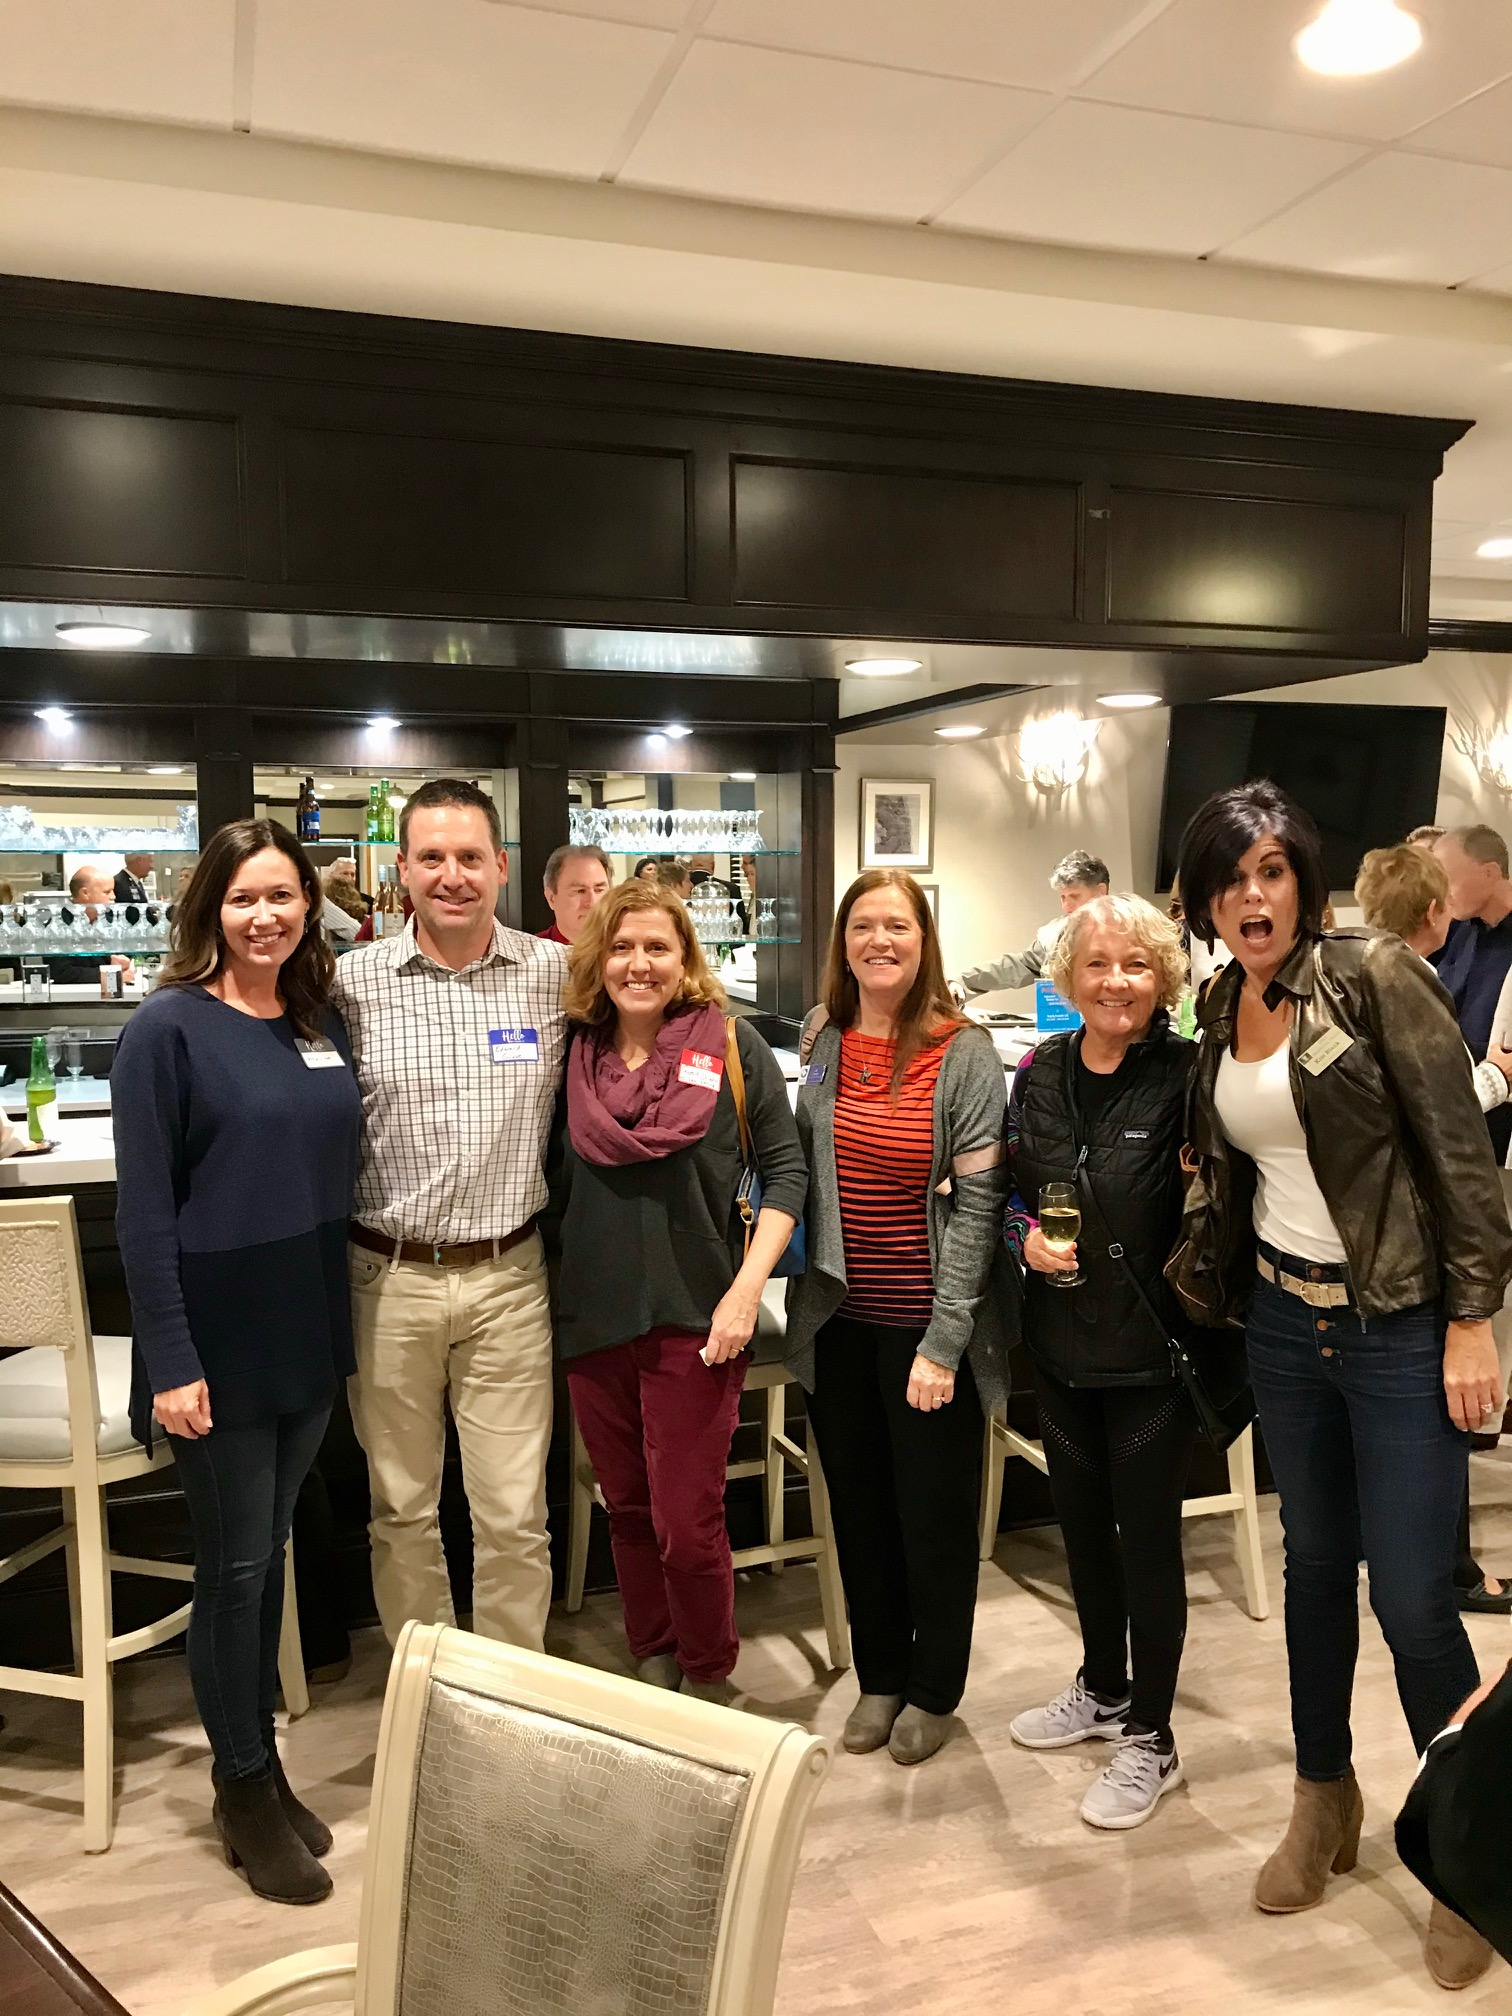 What an eclectic crew! These block party attendees are, from left, Amy Giove, Dr. Ed Giove, Rosie Stieby, Jo Cooper, Carolyn Hale, and Kim Berry.